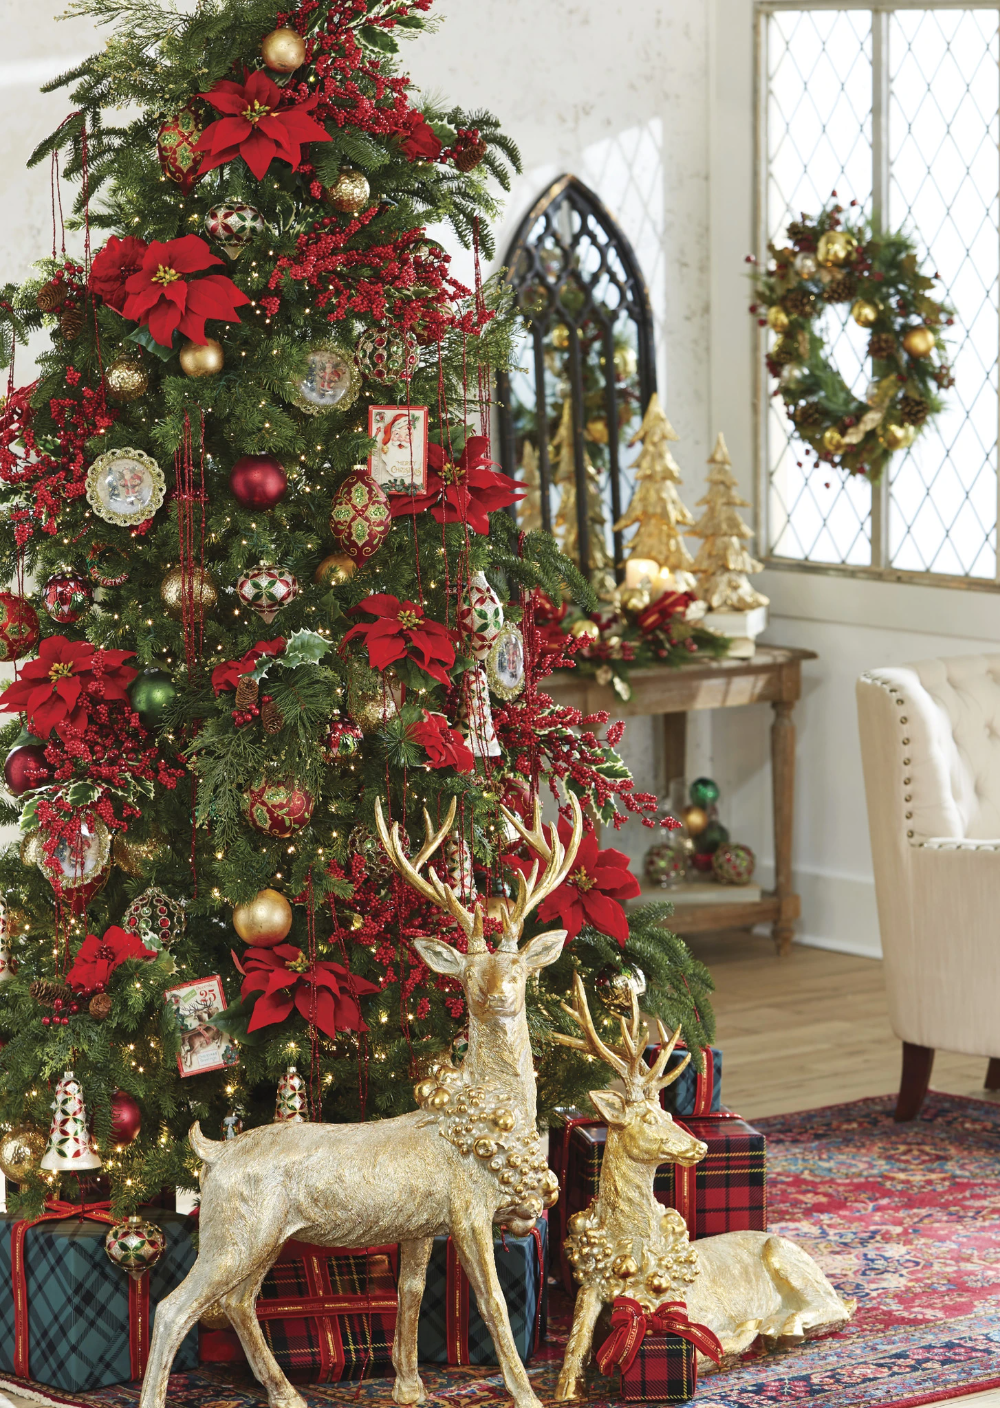 RAZ 2019 Christmas Trees — Trendy Tree Visit the Trendy Tree blog to see 12 years of Christmas tree inspiration from RAZ. #christmastree #christmasdecor #treeinspiration